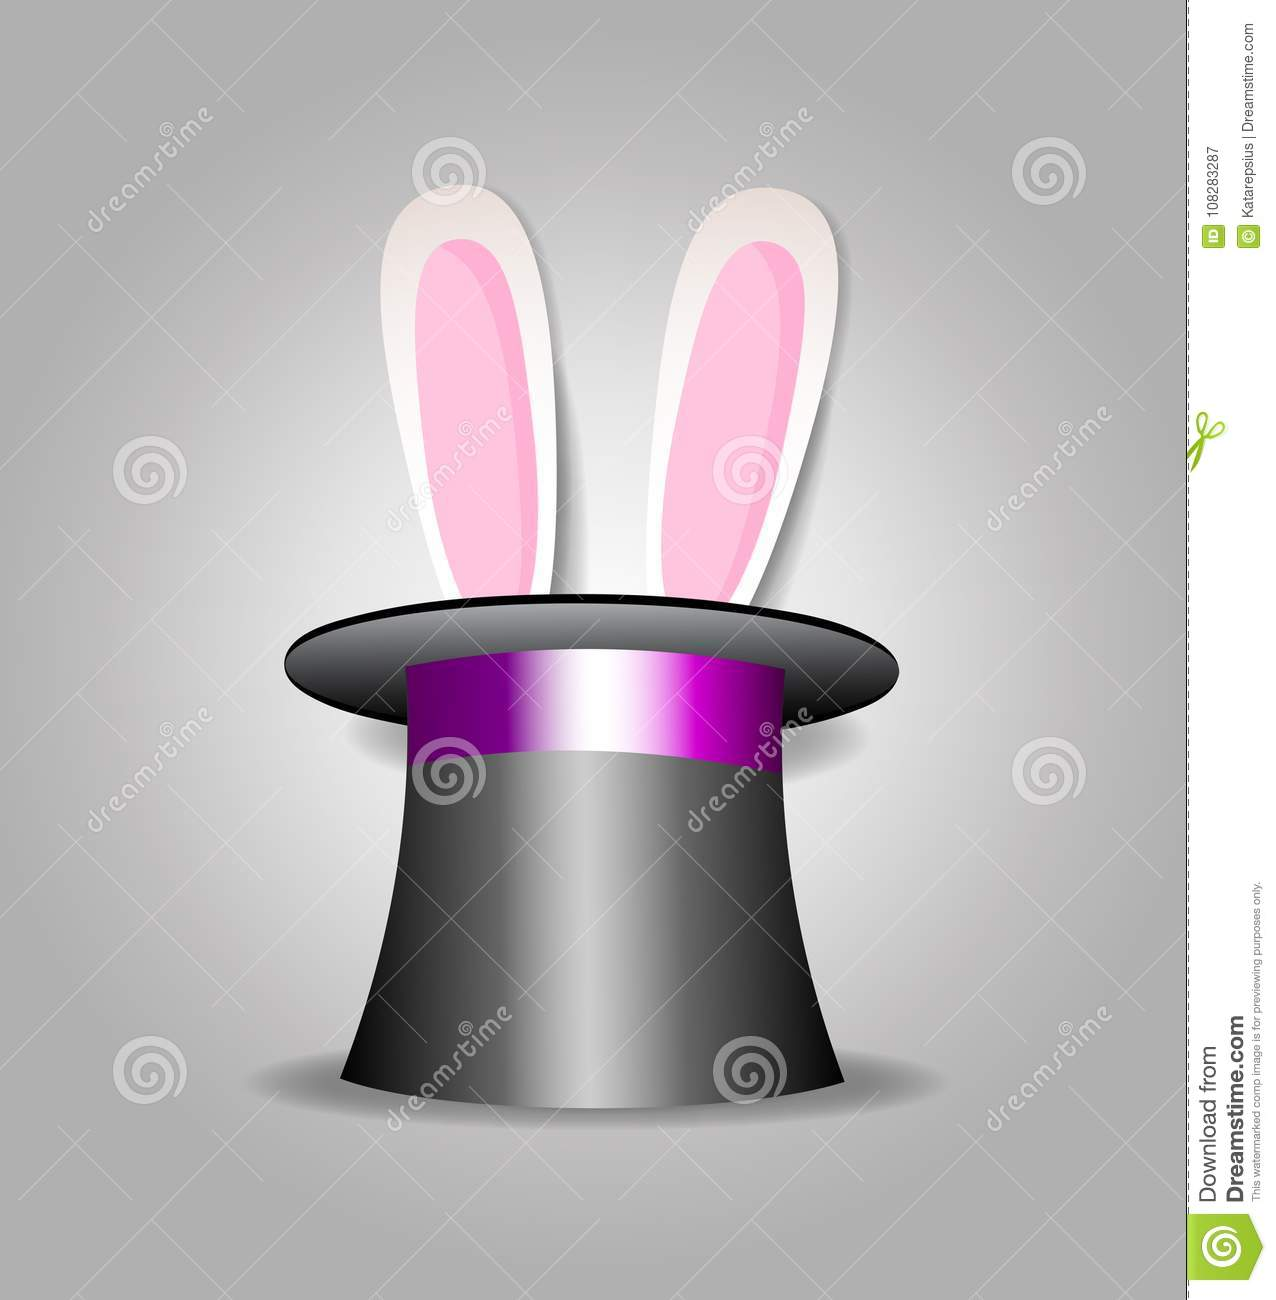 Bunny in magic hat stock vector. Illustration of mystery - 108283287